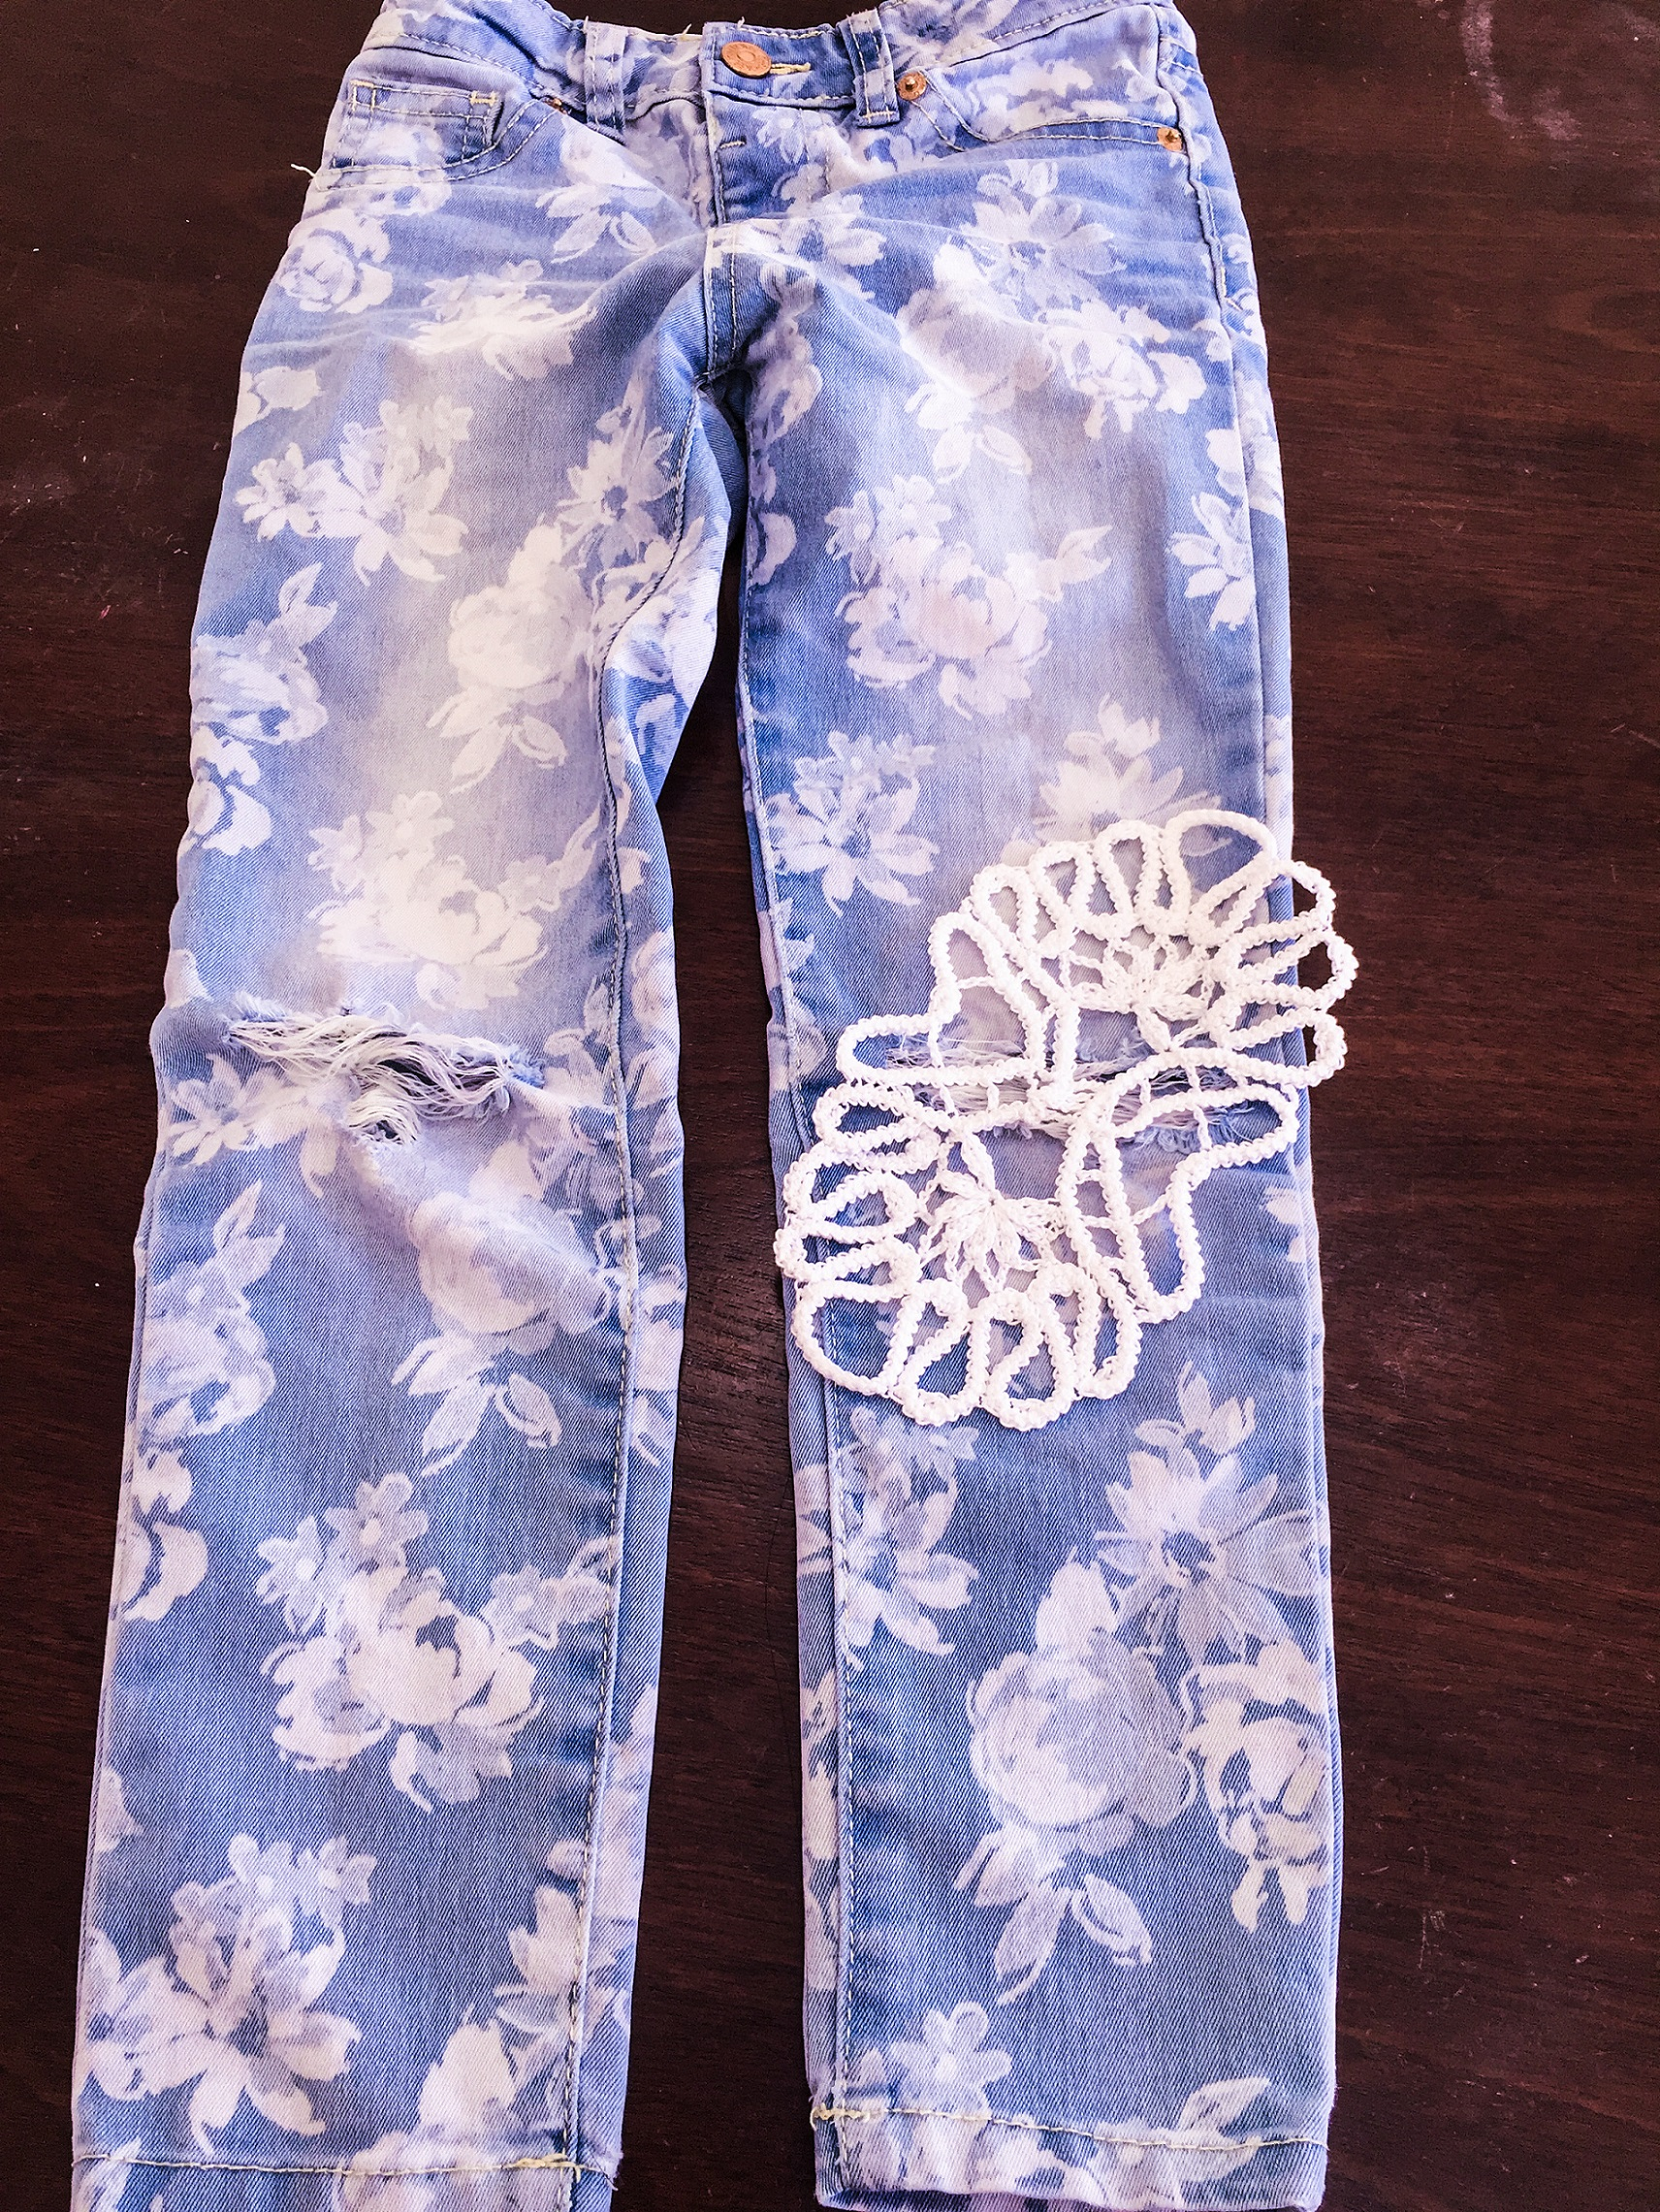 Crochet Point Lace for torn jeans -1